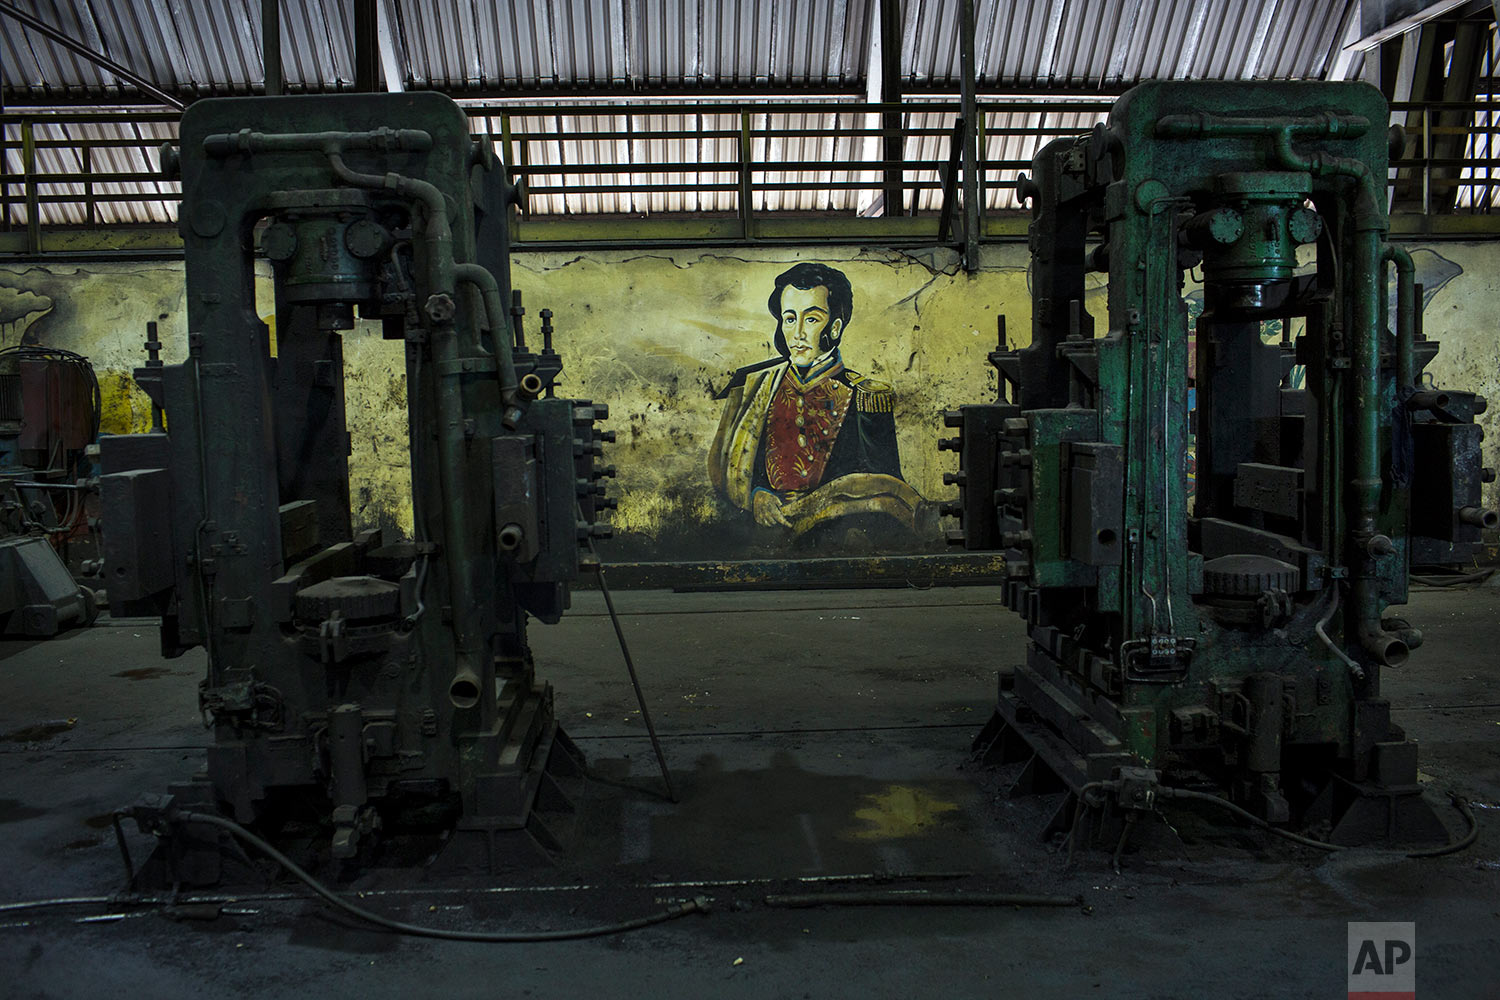 In this Nov. 7, 2017 photo, a painting of Latin America's independence hero Simon Bolivar, is seen at Sidor's Alambron plant, in Ciudad Guayana, Bolivar state, Venezuela. Production this year at state-run Sidor, Venezuela's largest steelmaker, is expected to reach barely 20 percent of what was peak production in 2007. (AP Photo/Rodrigo Abd)